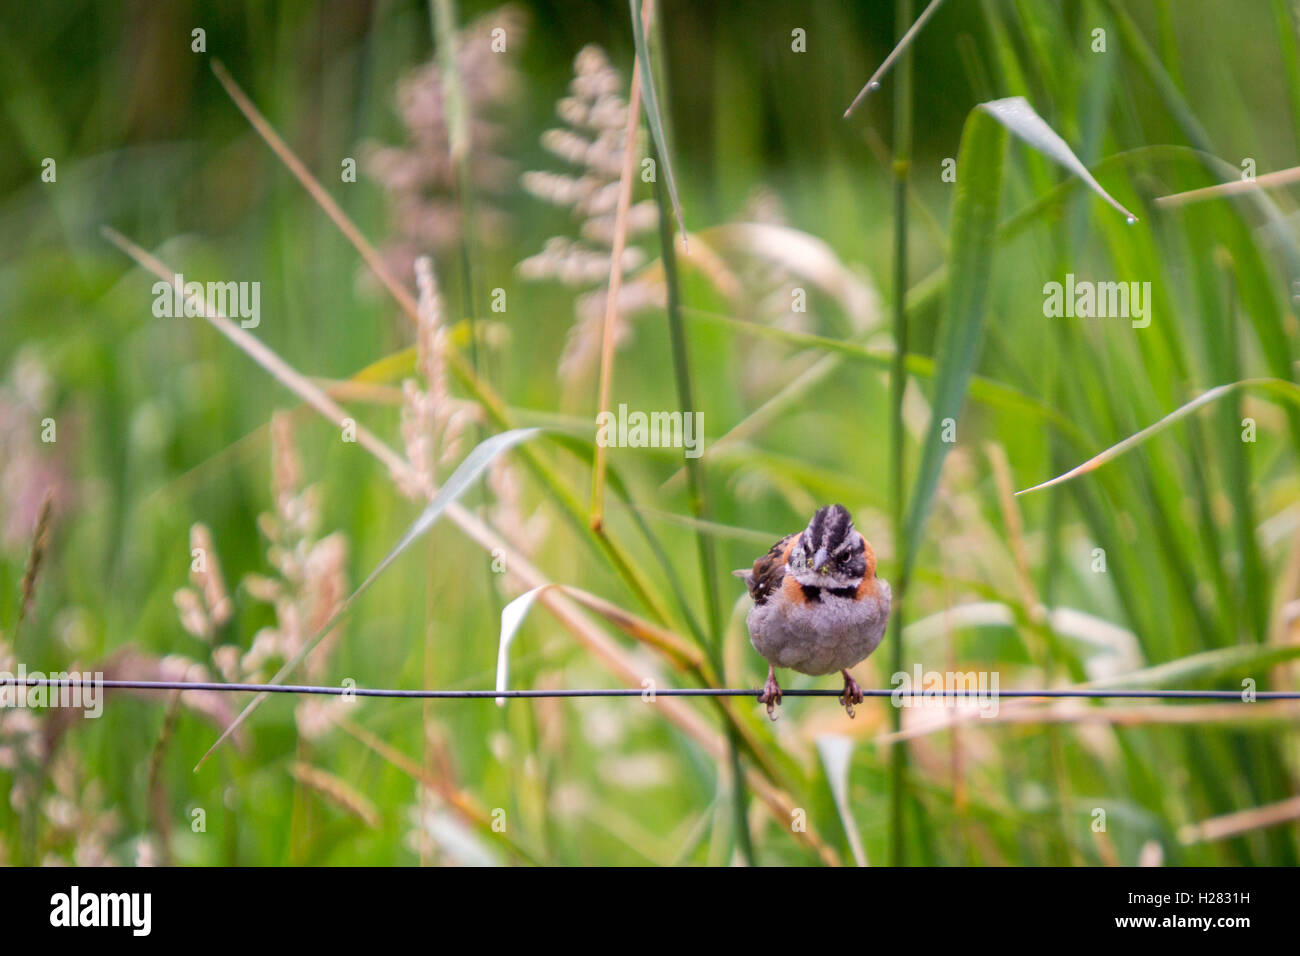 tiny sparrow on a wire in a field of tall grasses Stock Photo